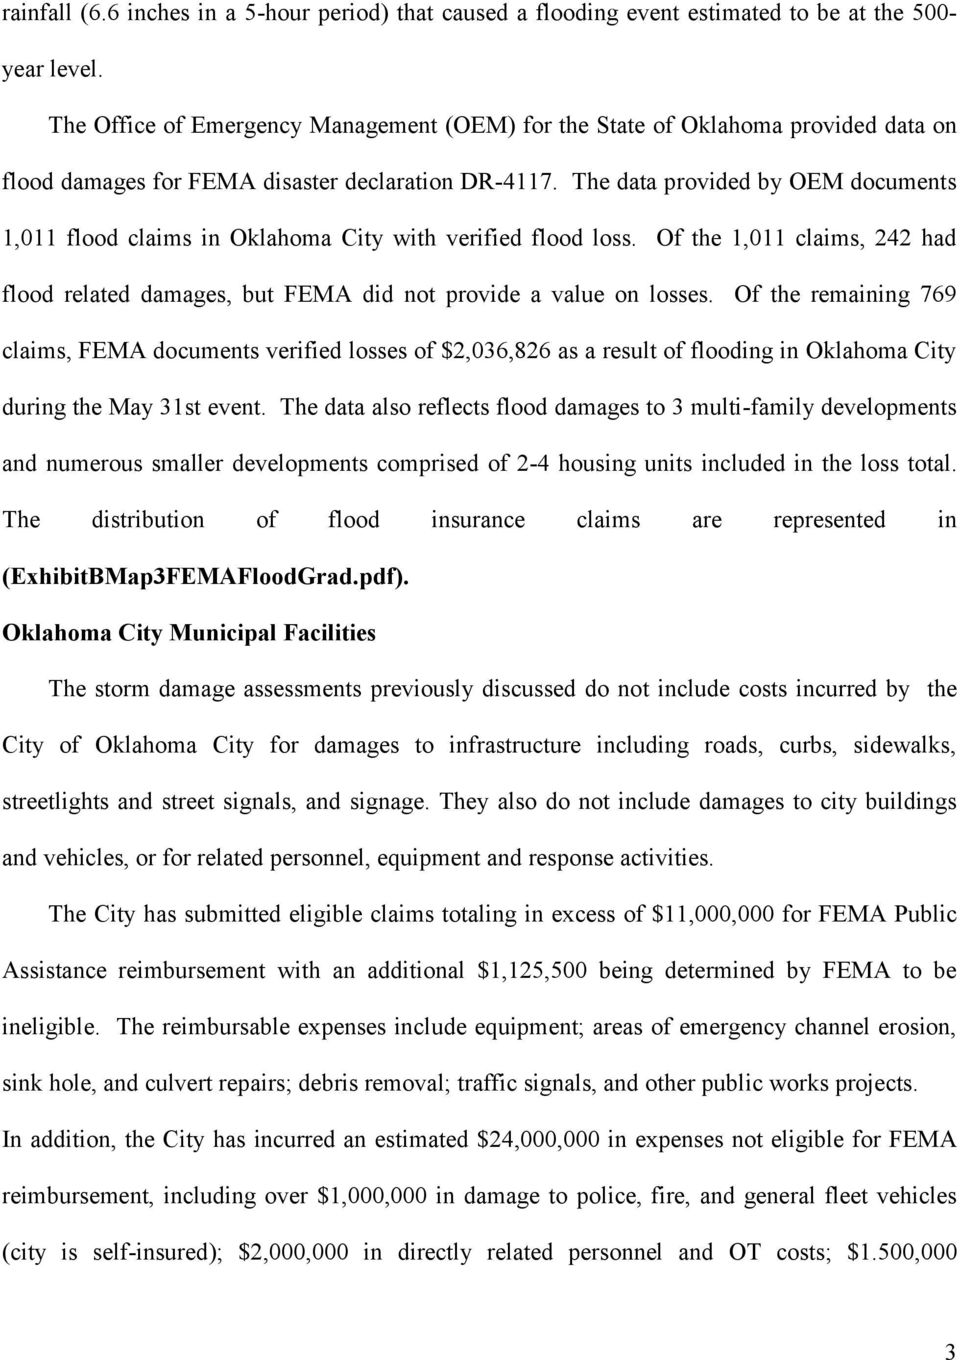 The data provided by OEM documents 1,011 flood claims in Oklahoma City with verified flood loss. Of the 1,011 claims, 242 had flood related damages, but FEMA did not provide a value on losses.